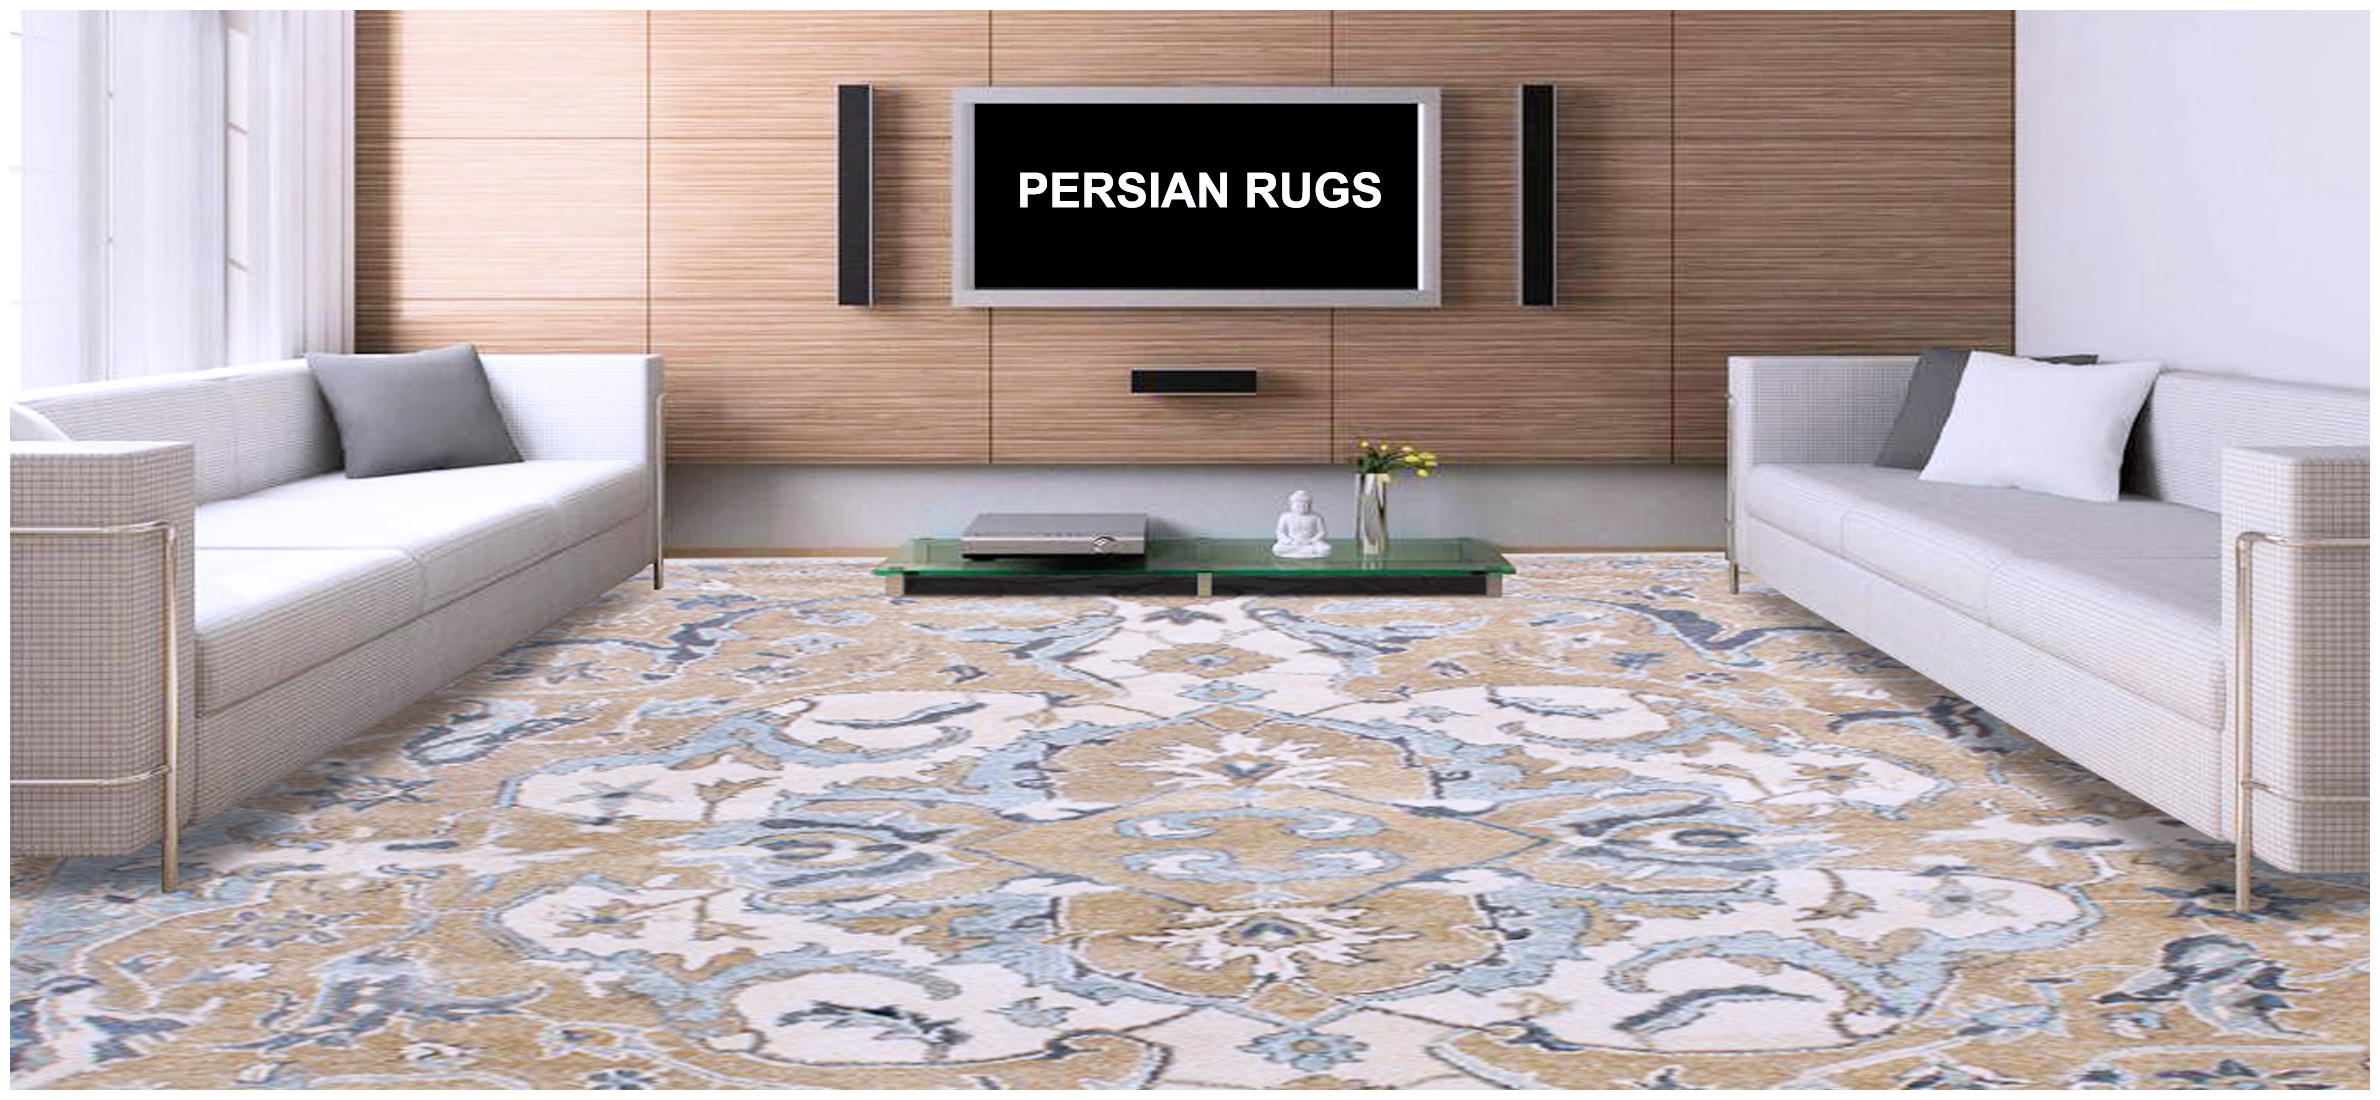 How To Decorate Your Home With Persian Rugs!